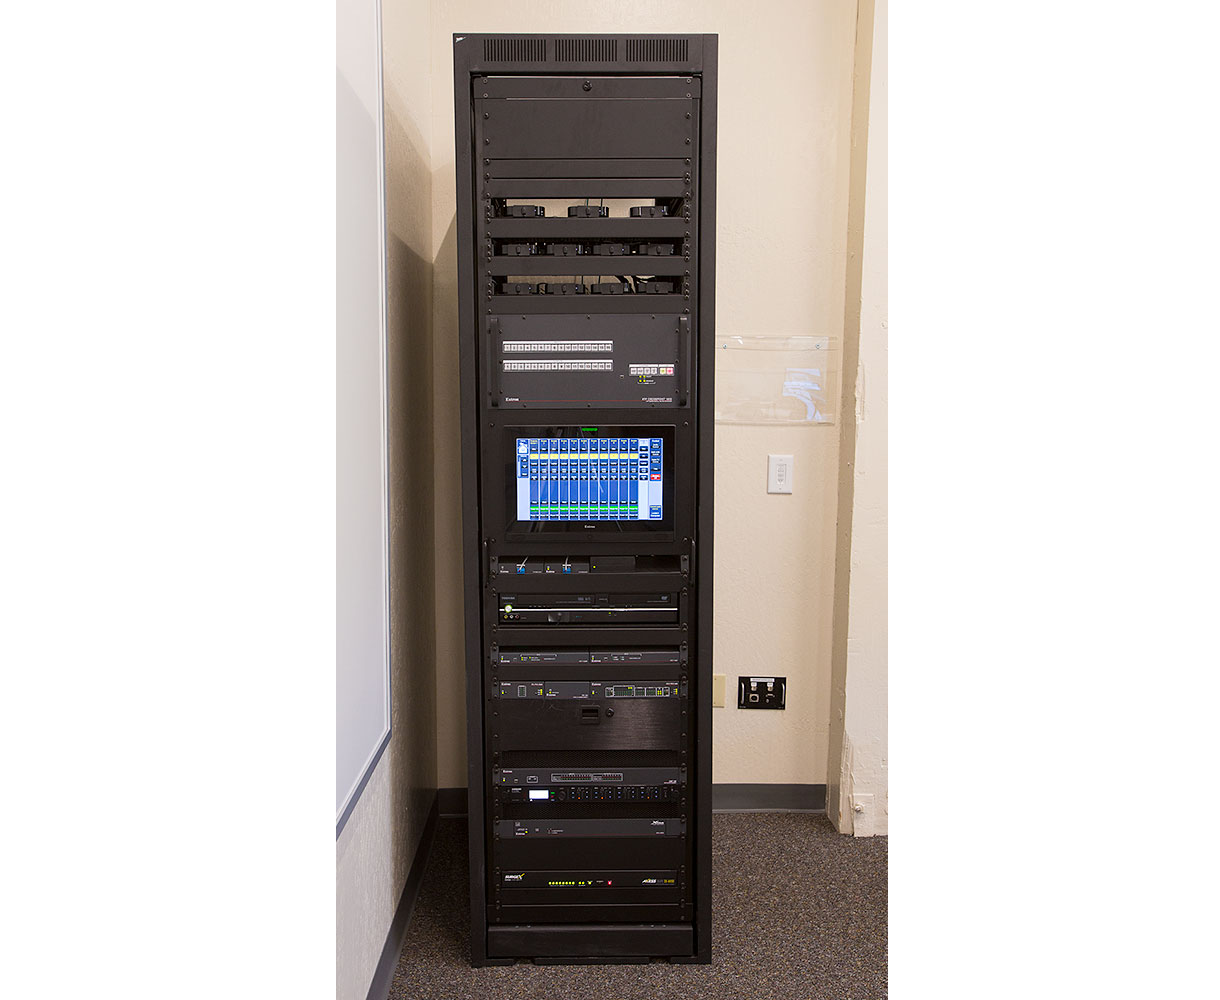 The Zoom computer and the MediaPort 200 are rack-mounted in the corner of the room.